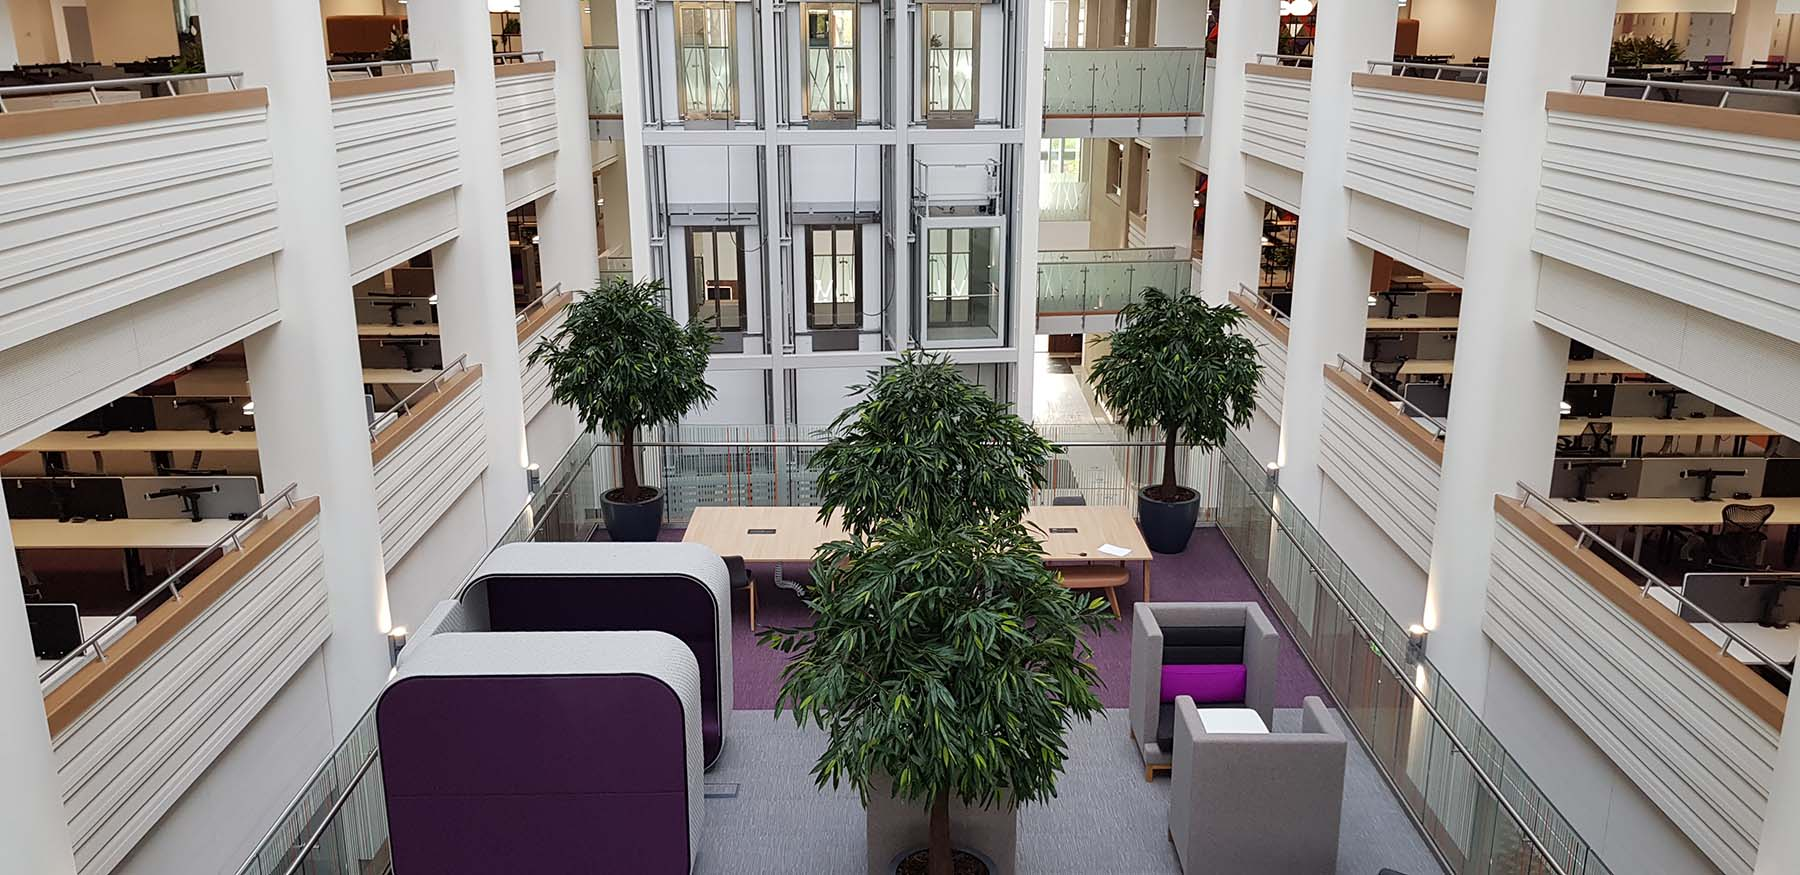 Huge artificial Ficus Alii trees create an attracitve highly visual green oasis in the centre of a modern office atrium